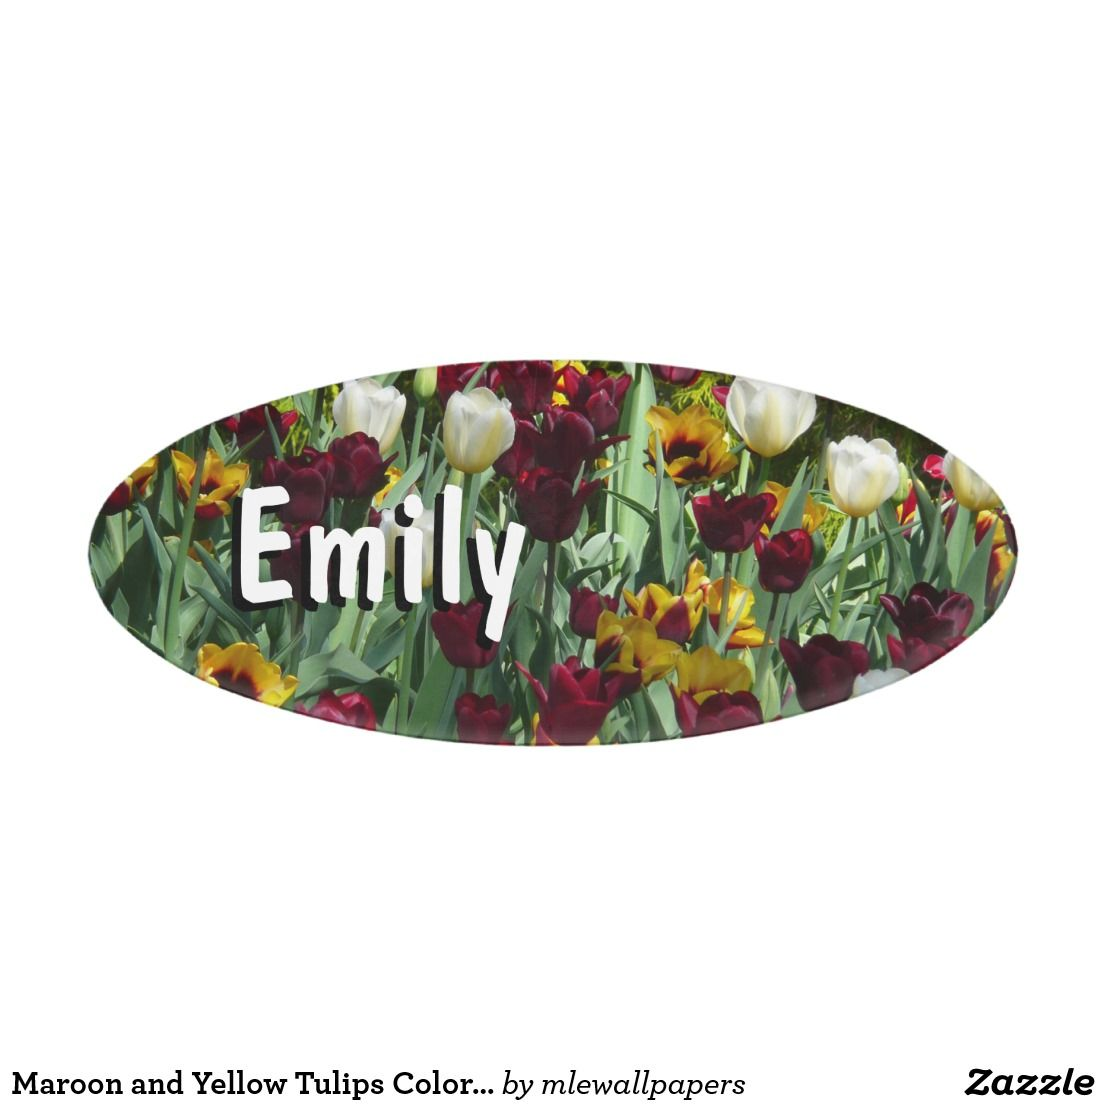 Maroon and yellow tulips colorful floral name tag zazzle